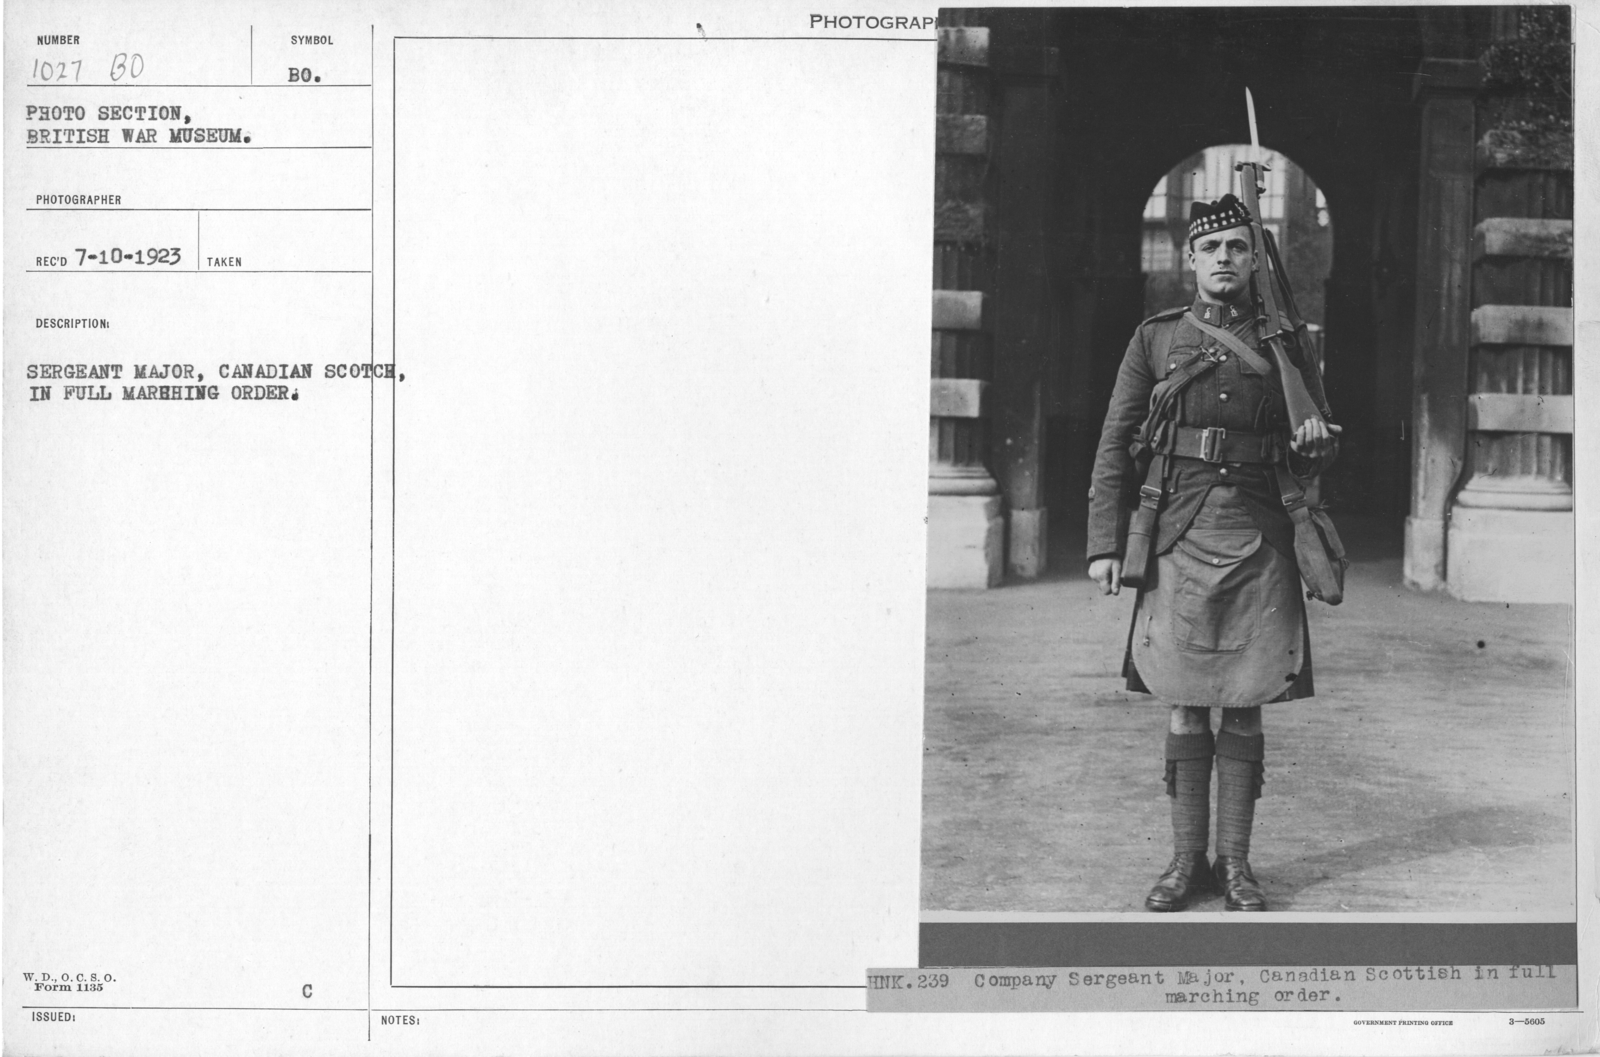 Sergeant Major, Canadian Scotch, in full marching order